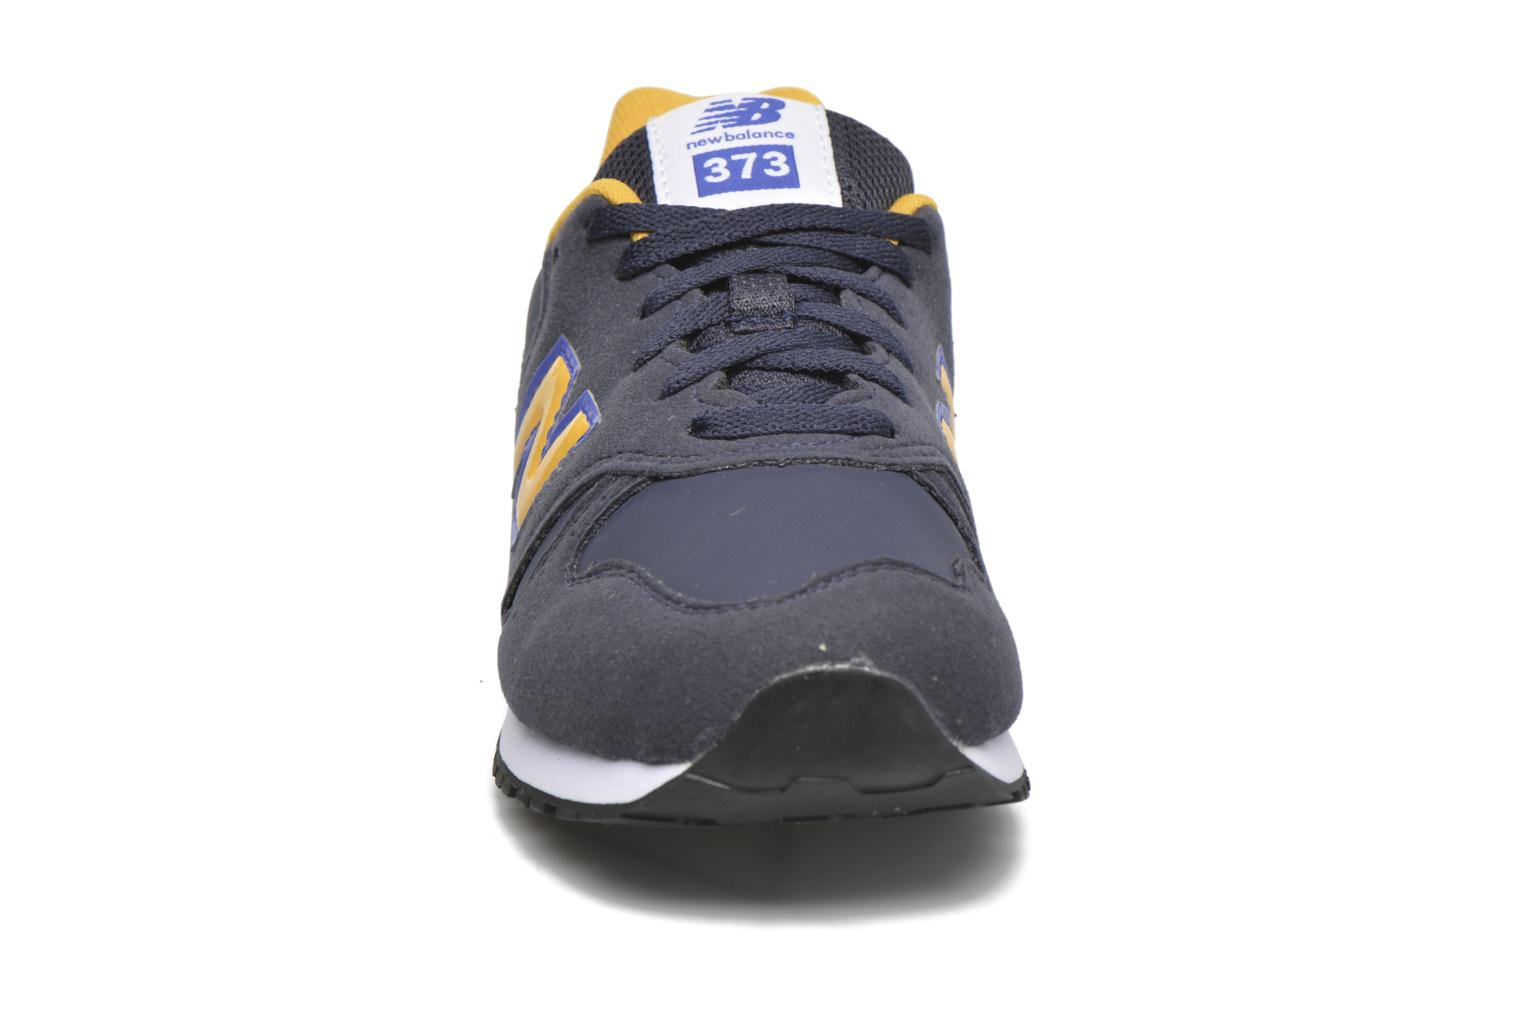 KJ373 J ZSY Blue Yellow